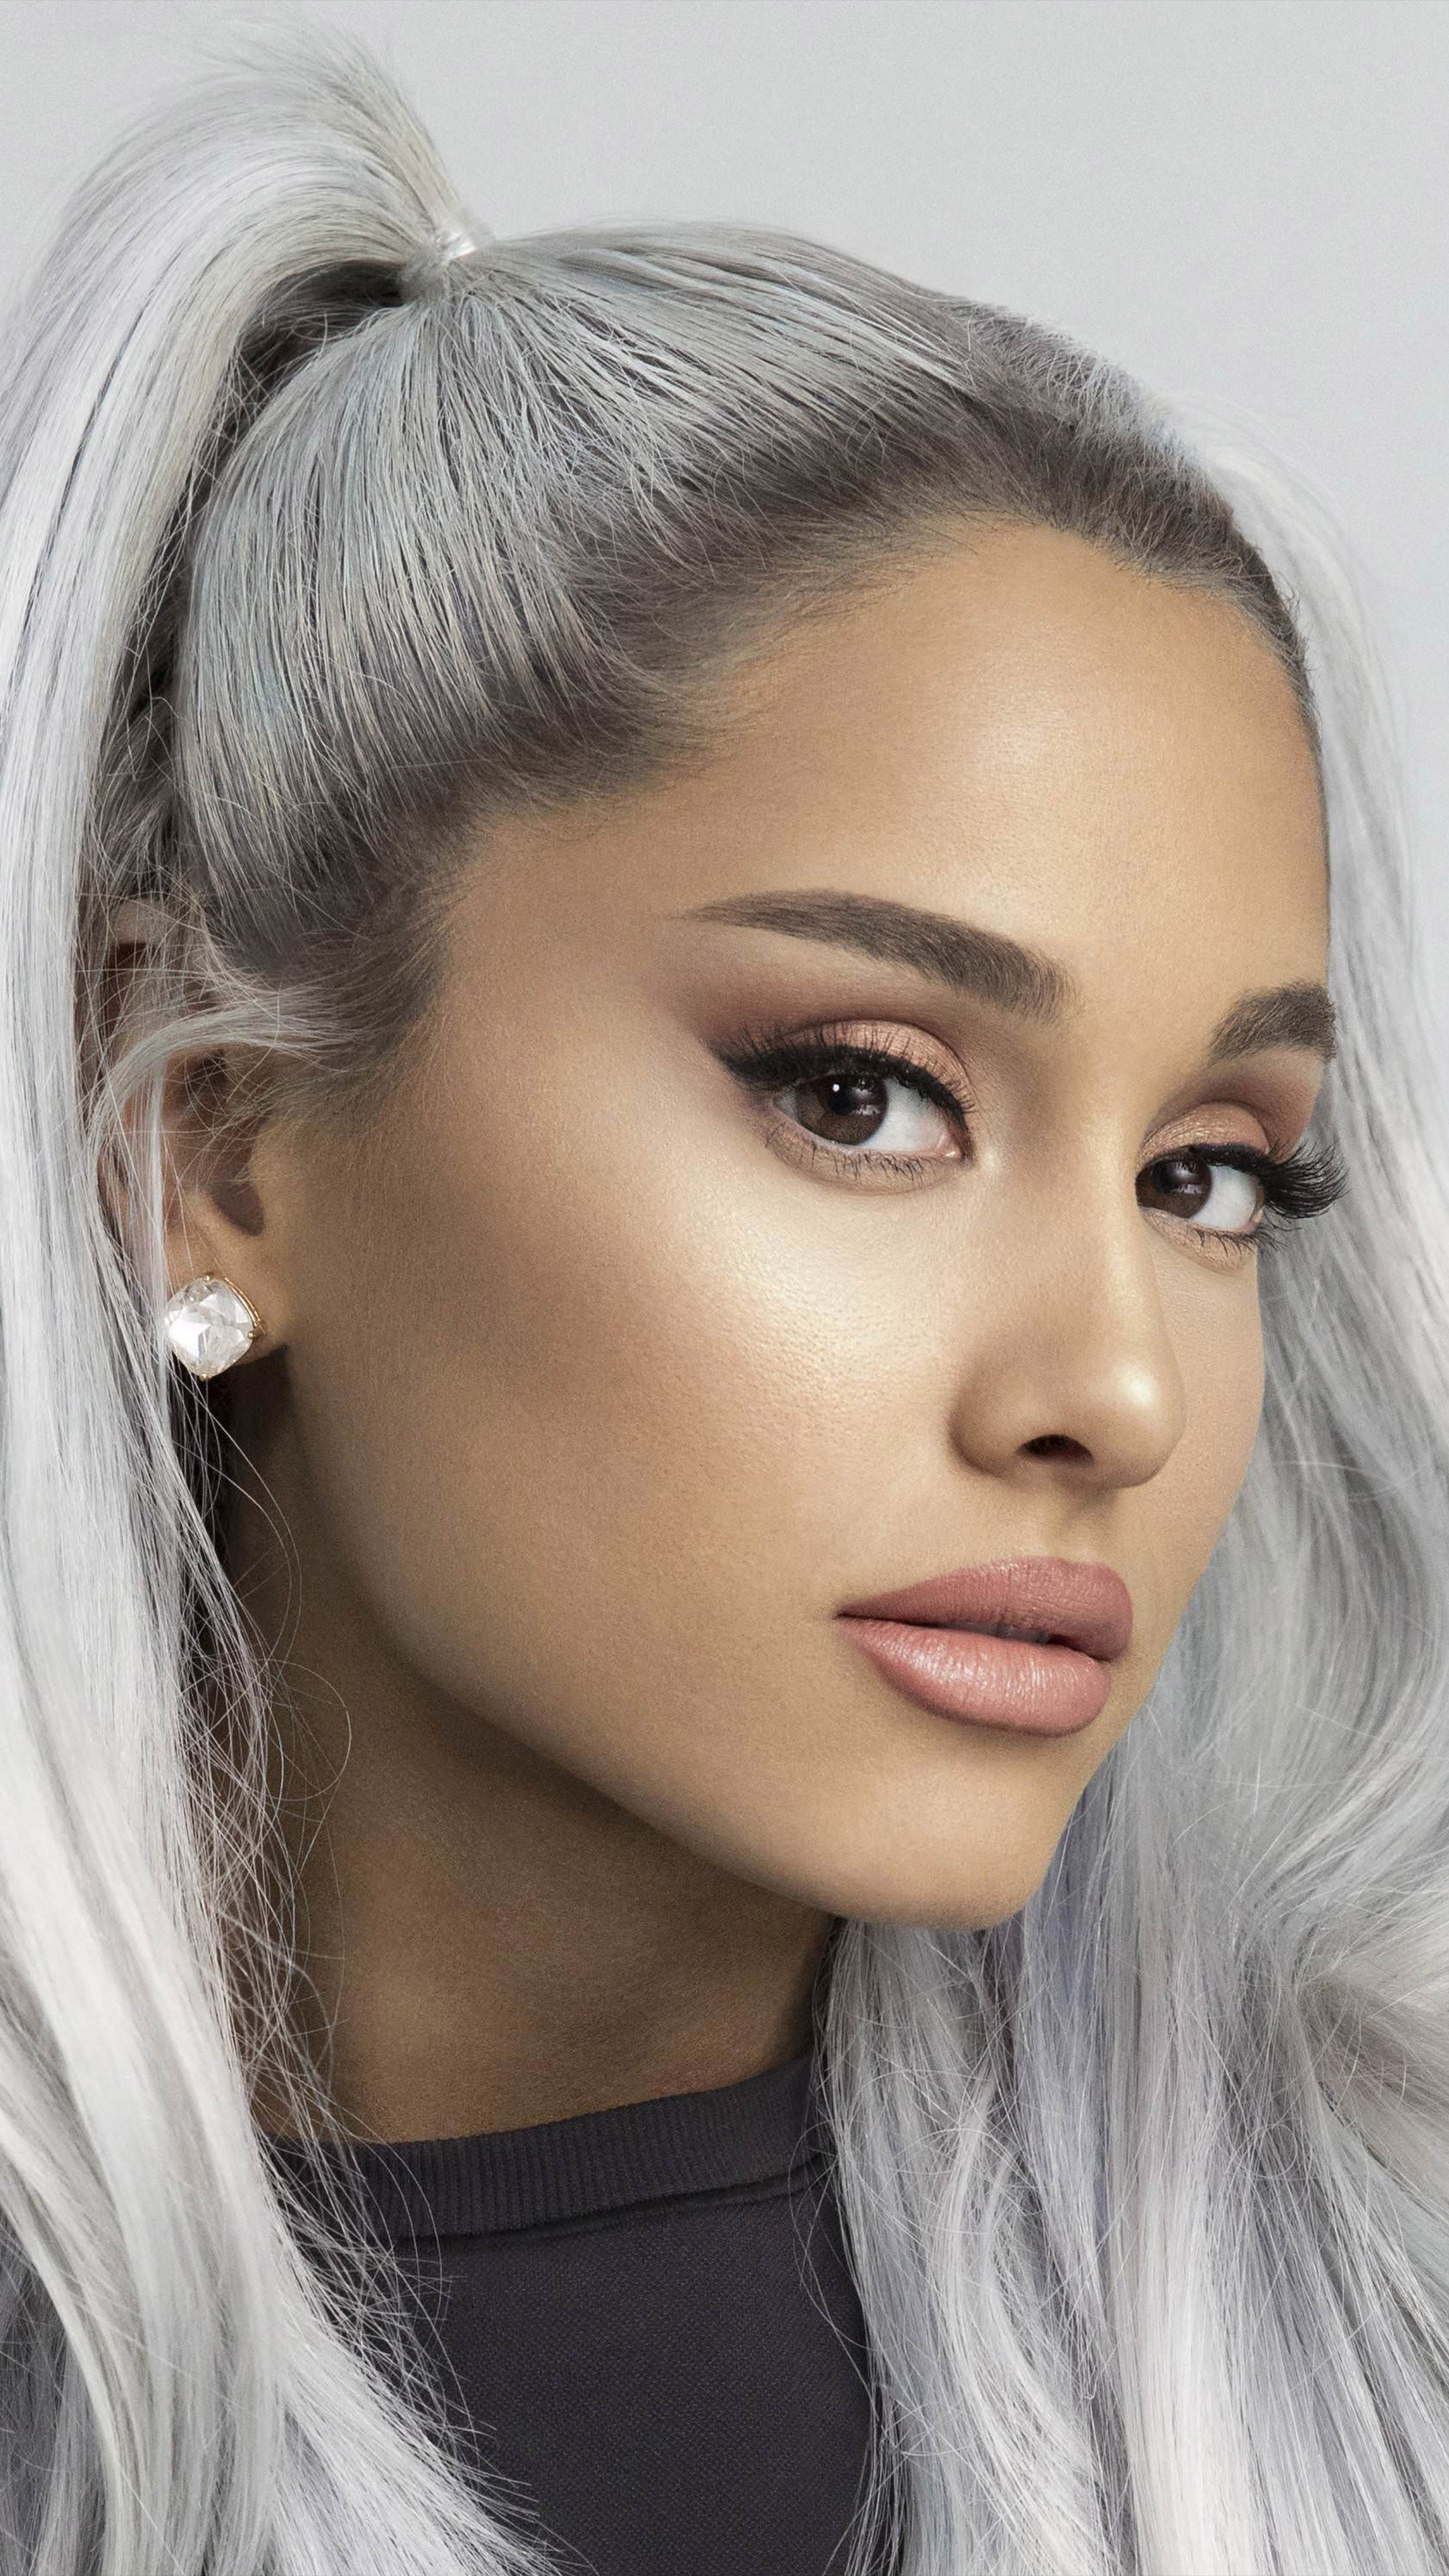 Cute Wallpapers For Phones For Free Download Singer Song Writer Ariana Grande Free Pure 4k